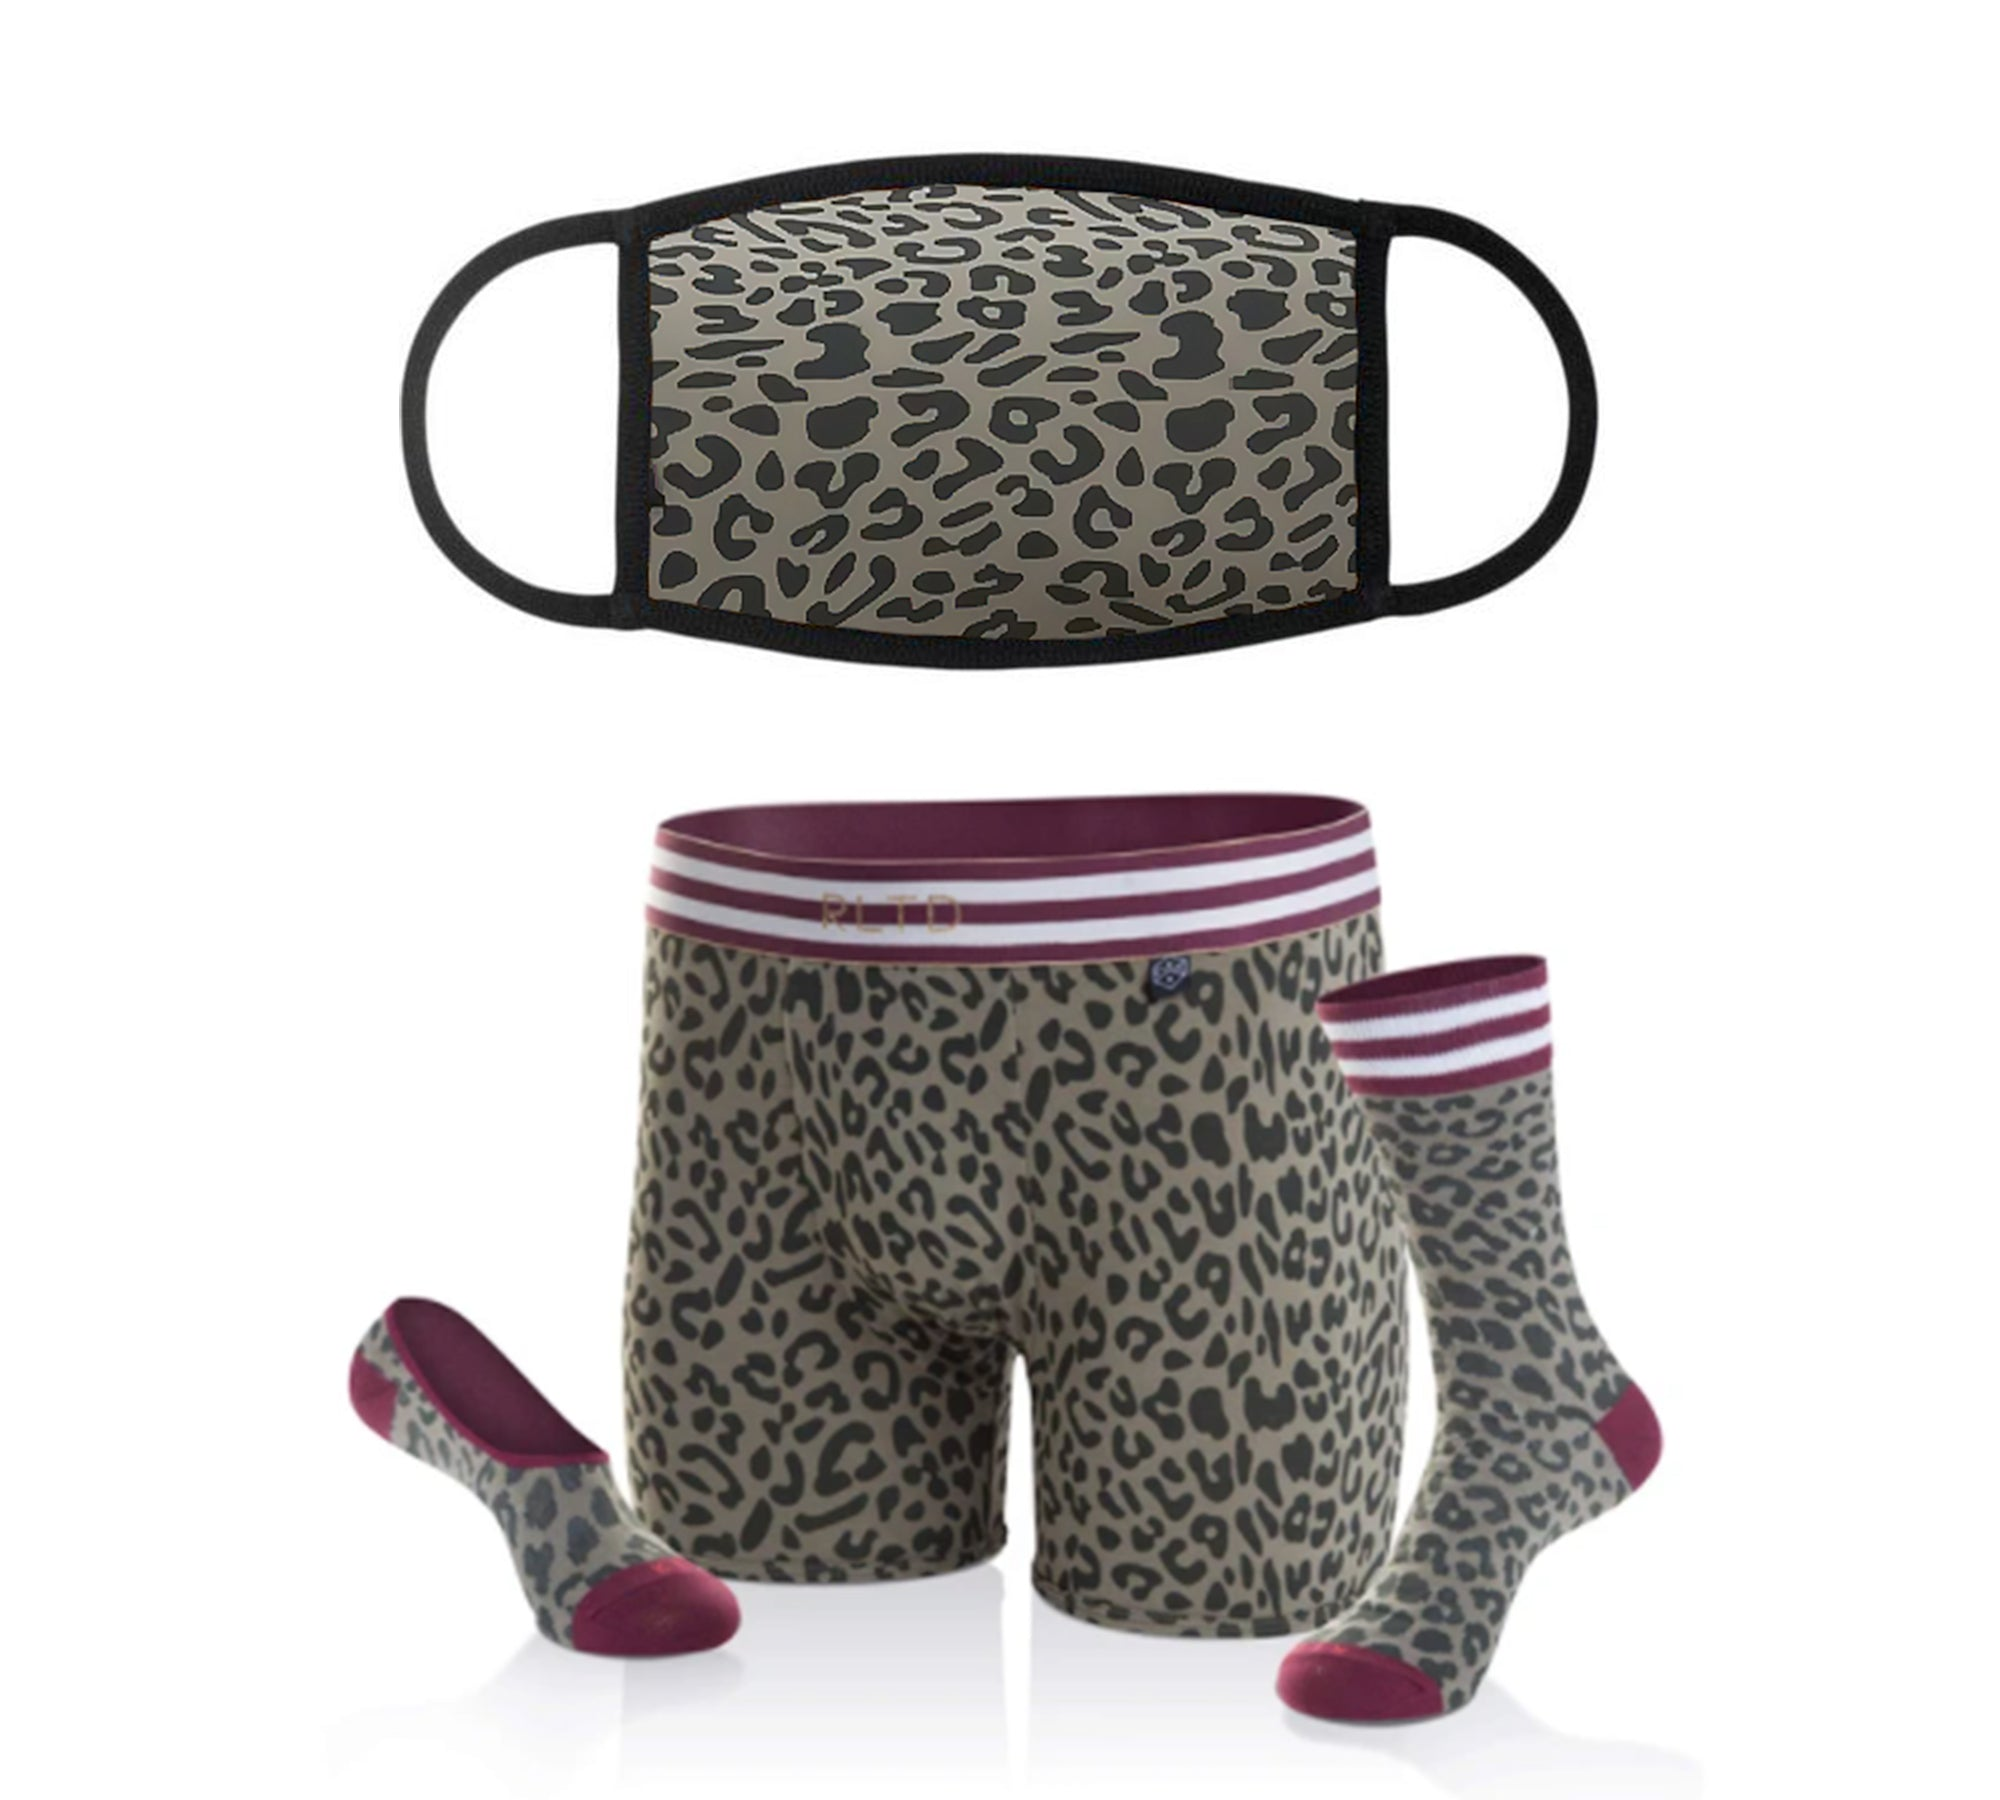 Cheetah Face Cover & Underwear/Sock Bundle - Related Garments